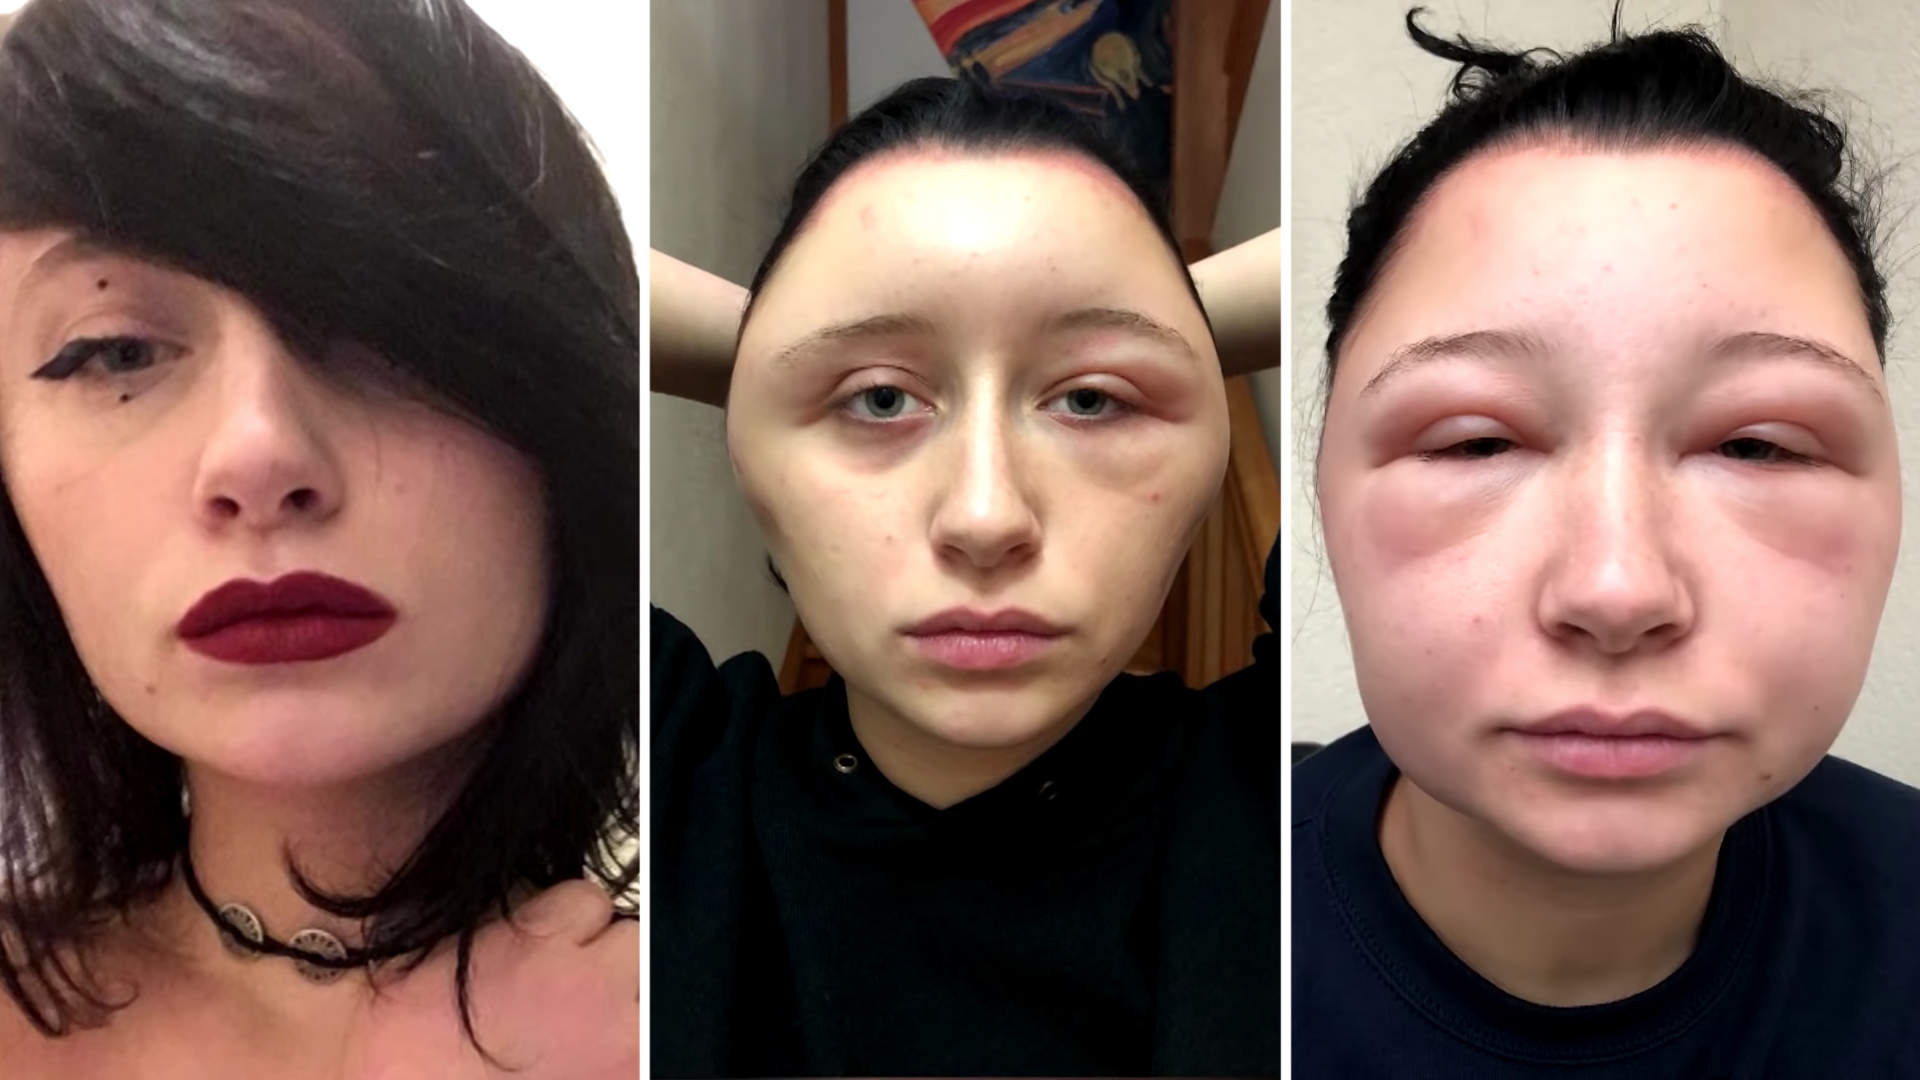 This Woman's Head Doubled in Size Due to a Crazy Allergic Reaction to Hair Dye